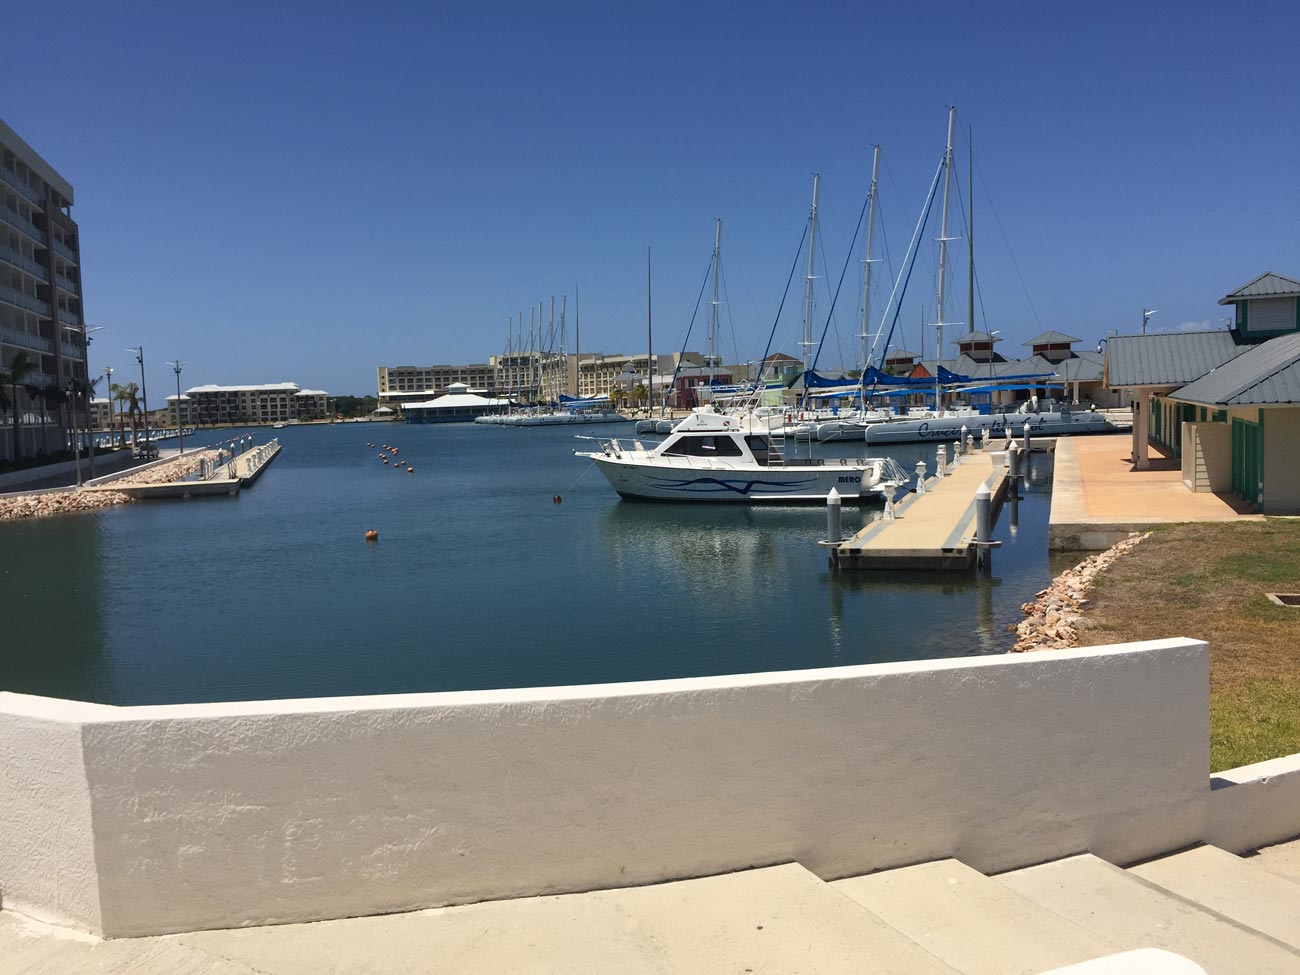 boats and dock